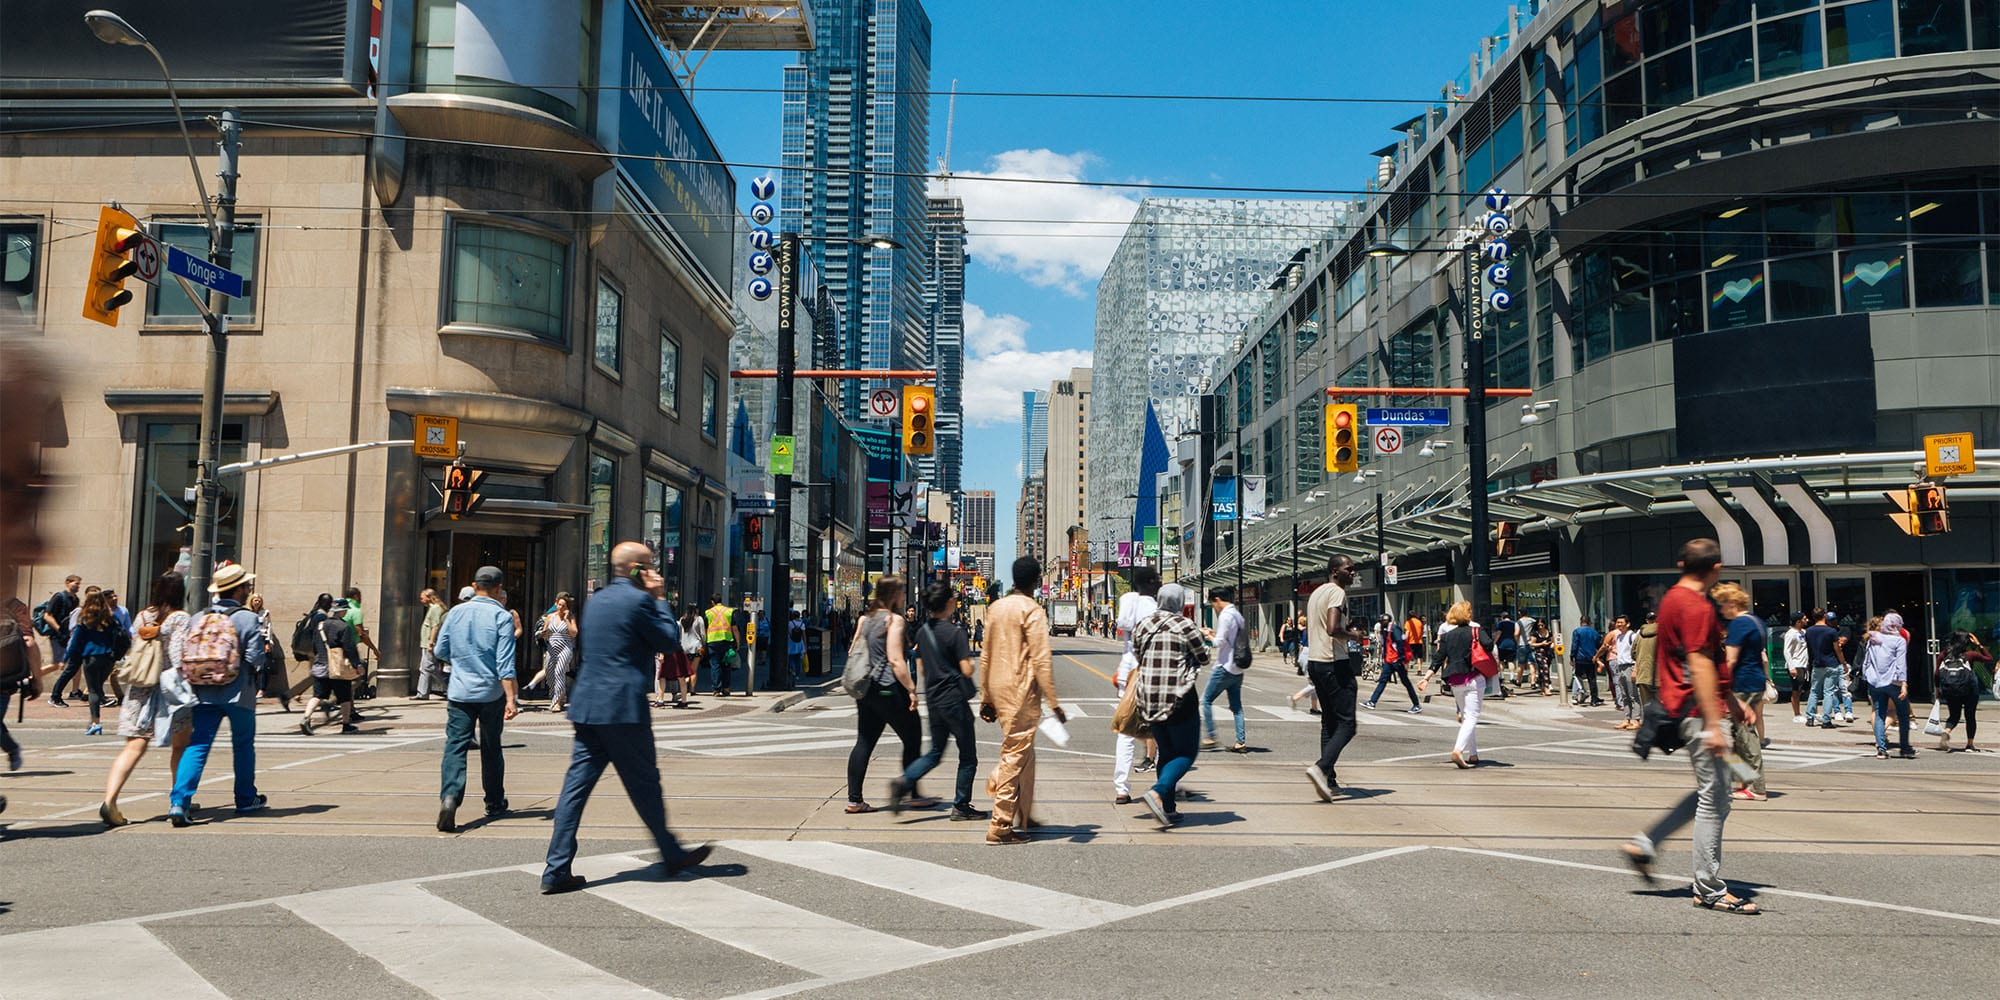 5 Canadian companies that are improving life in the city